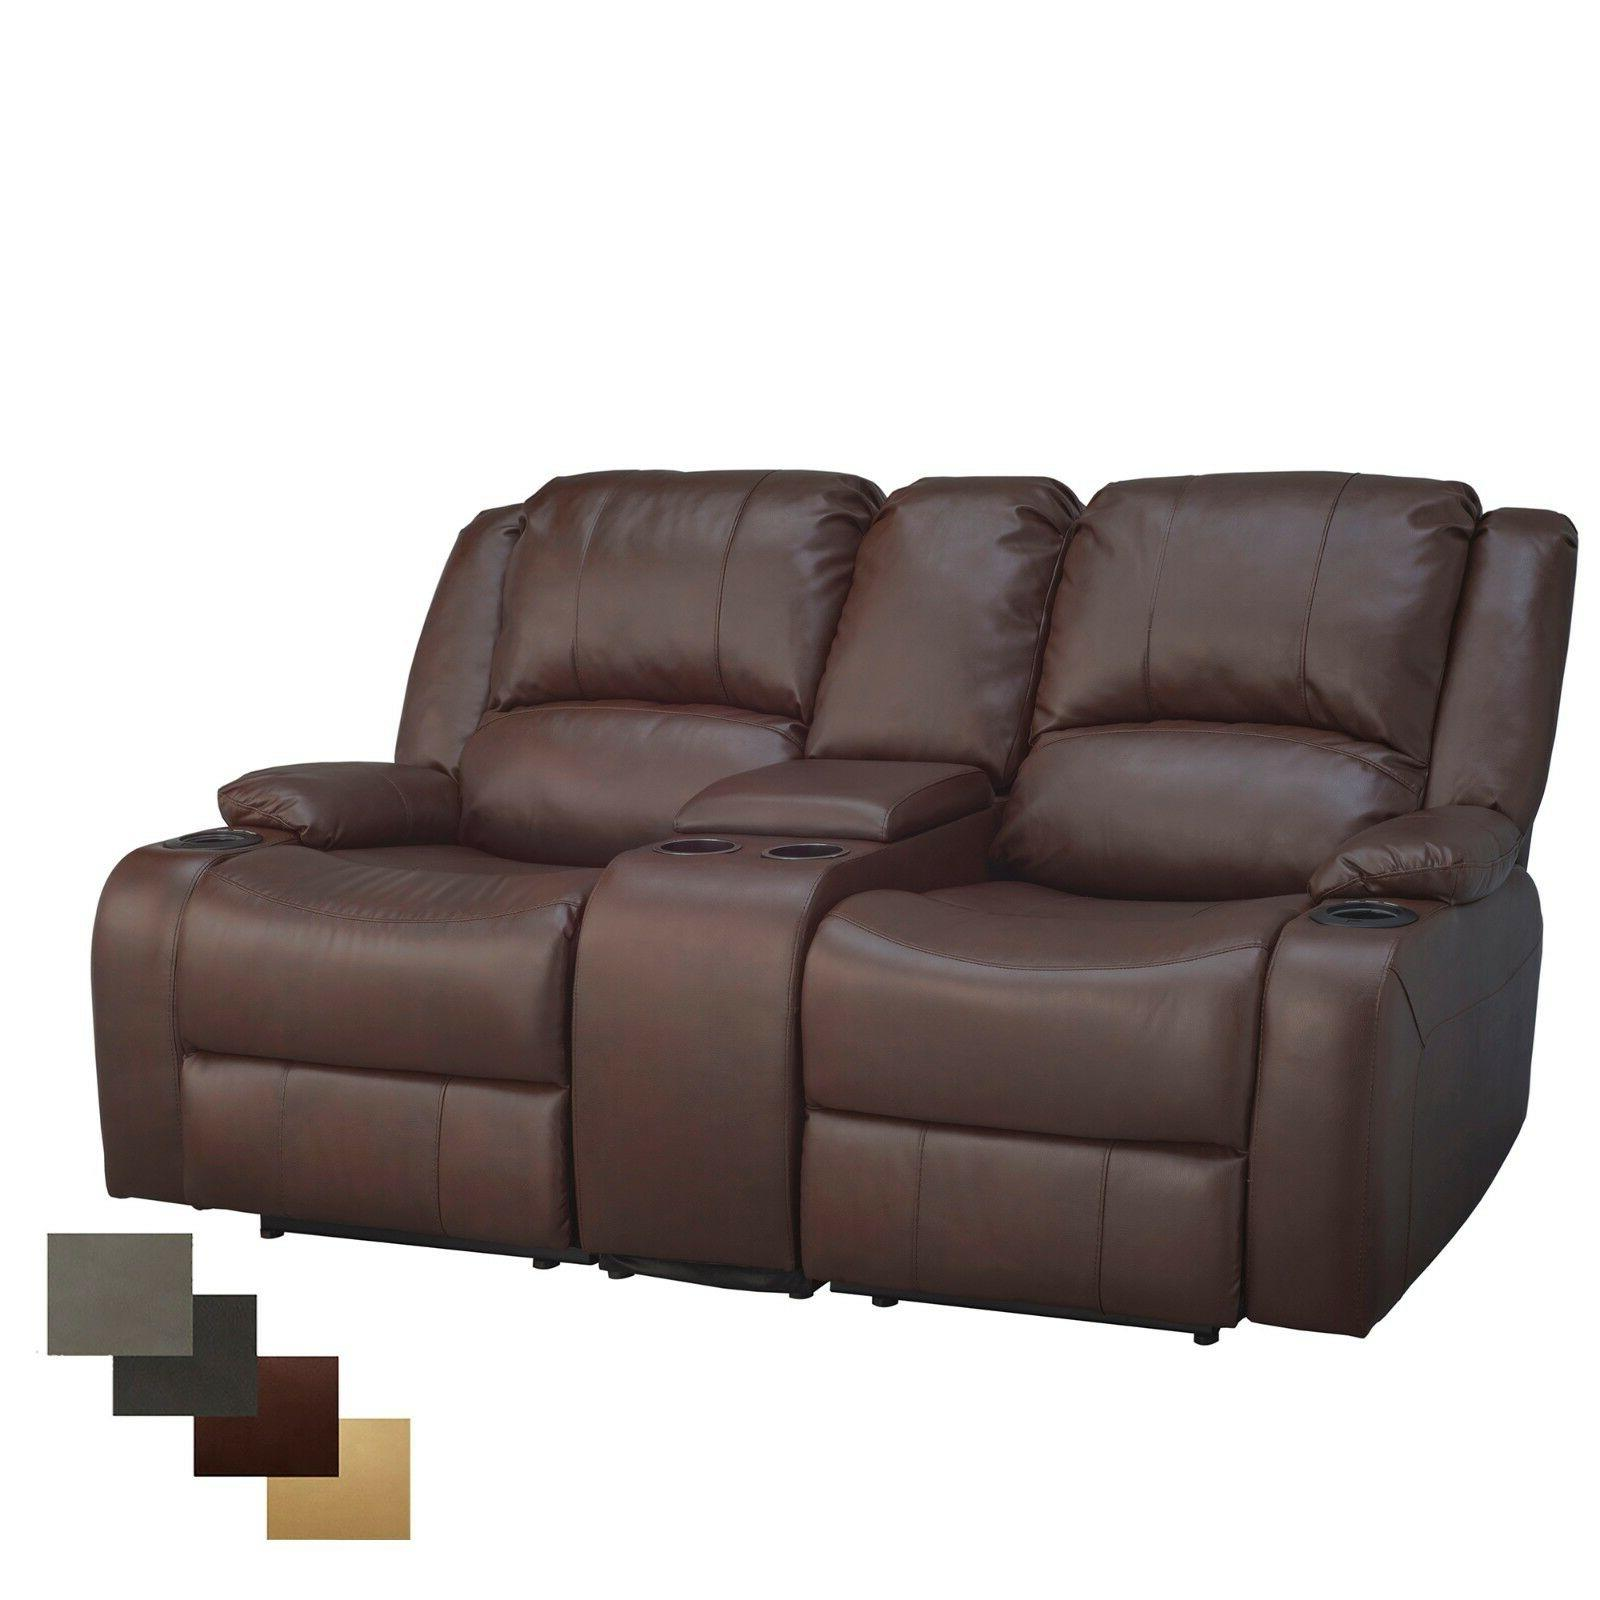 RecPro Charles Double Recliner